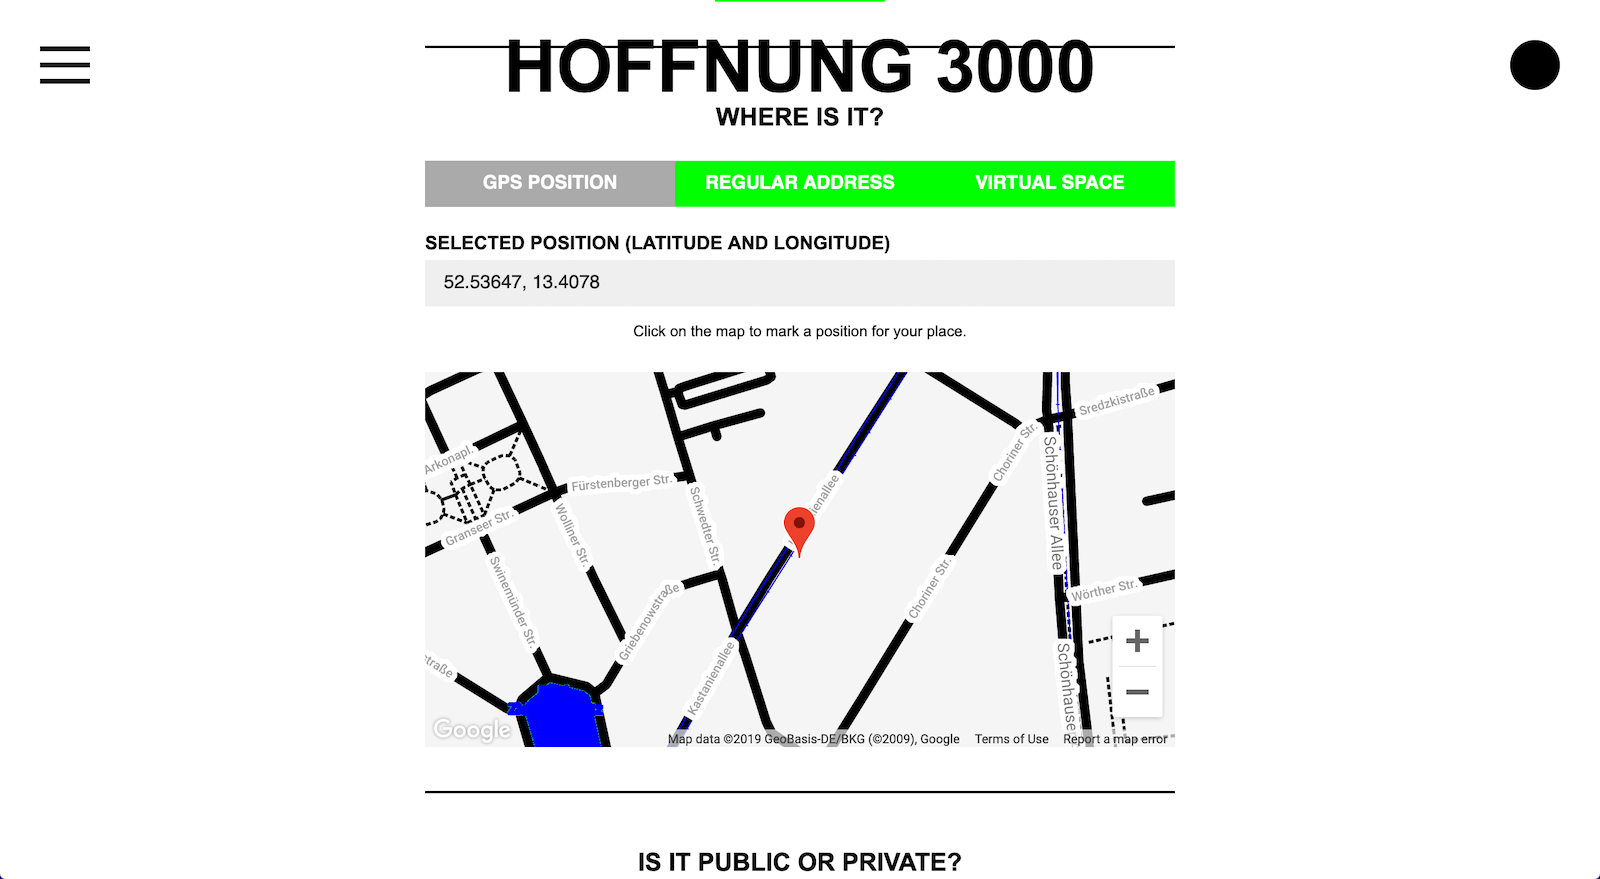 HOFFNUNG 3000 Create new place